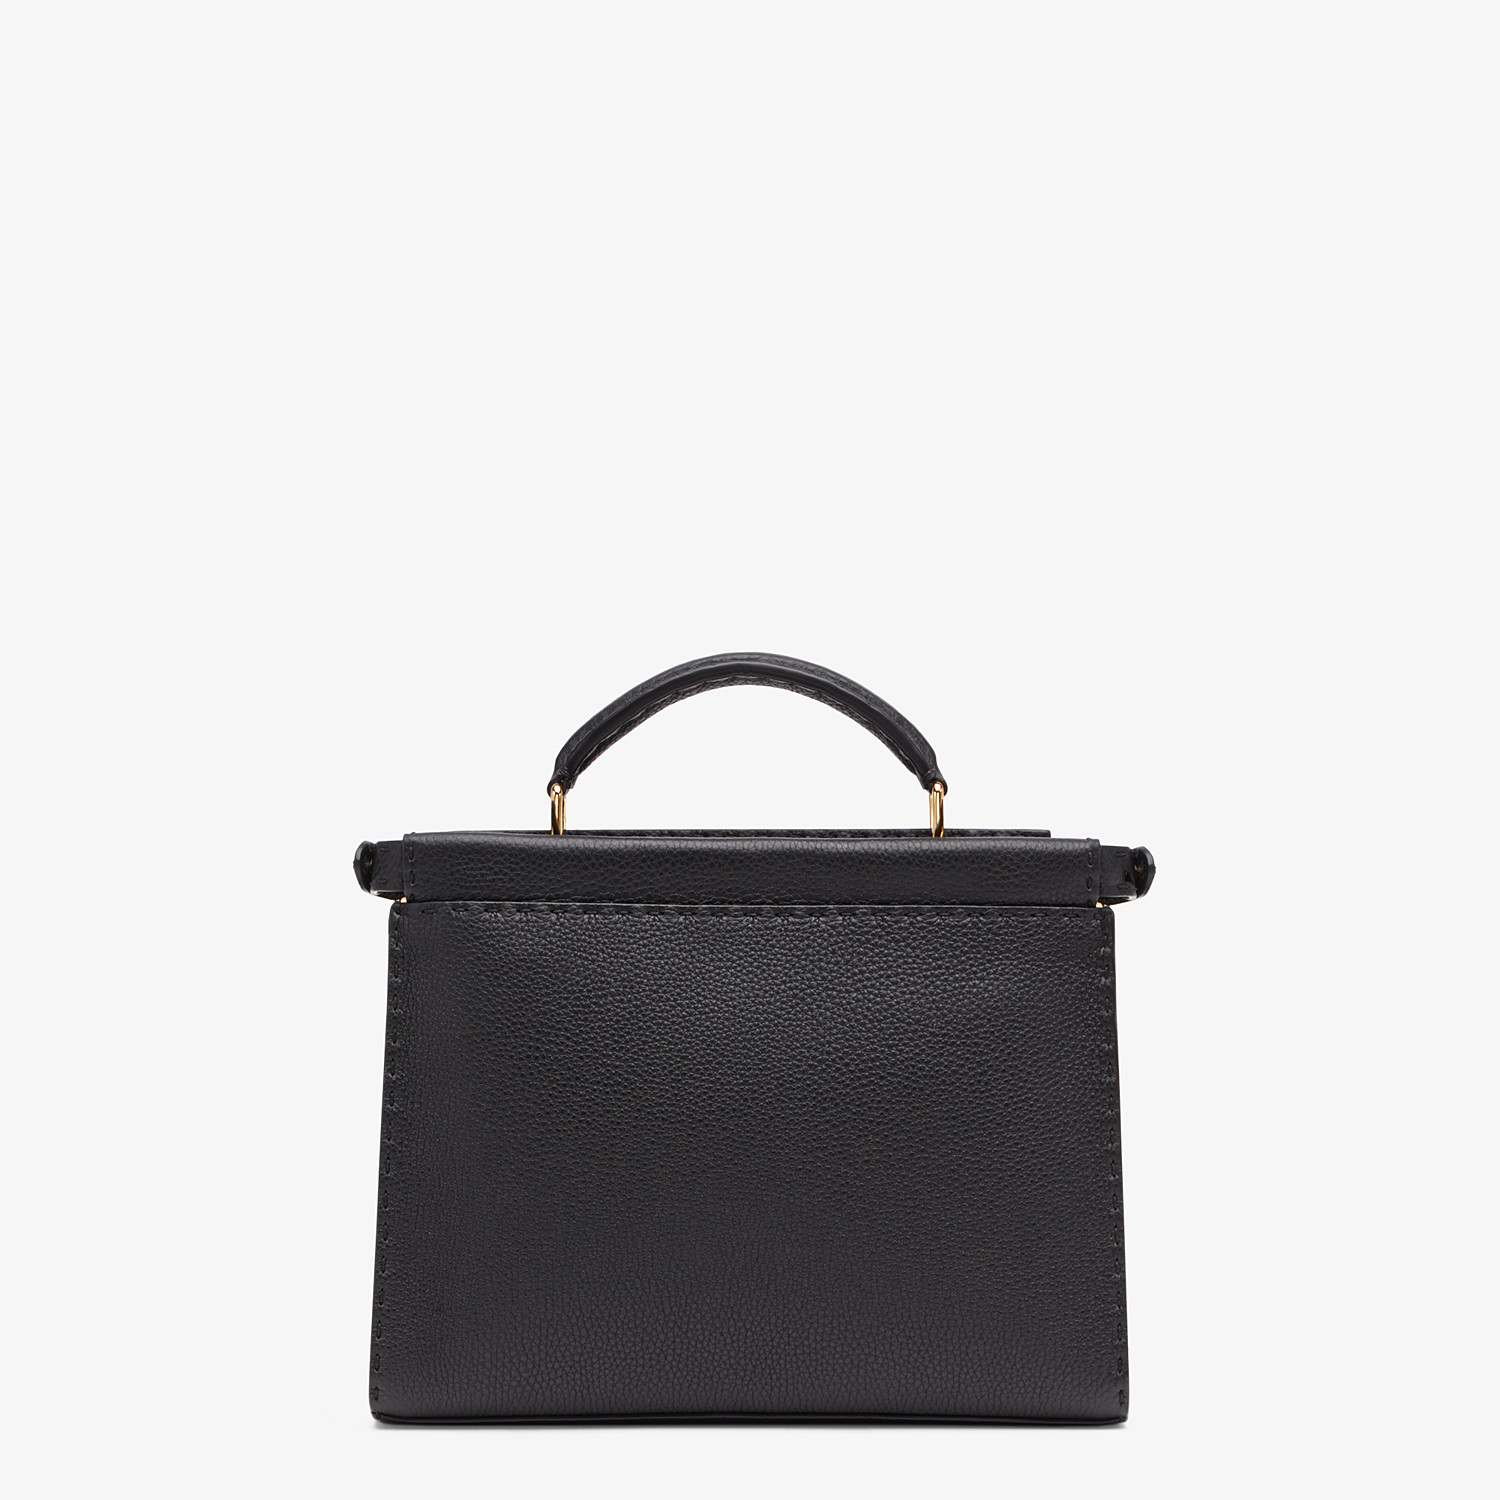 FENDI PEEKABOO ICONIC FIT MINI - Black leather bag - view 3 detail